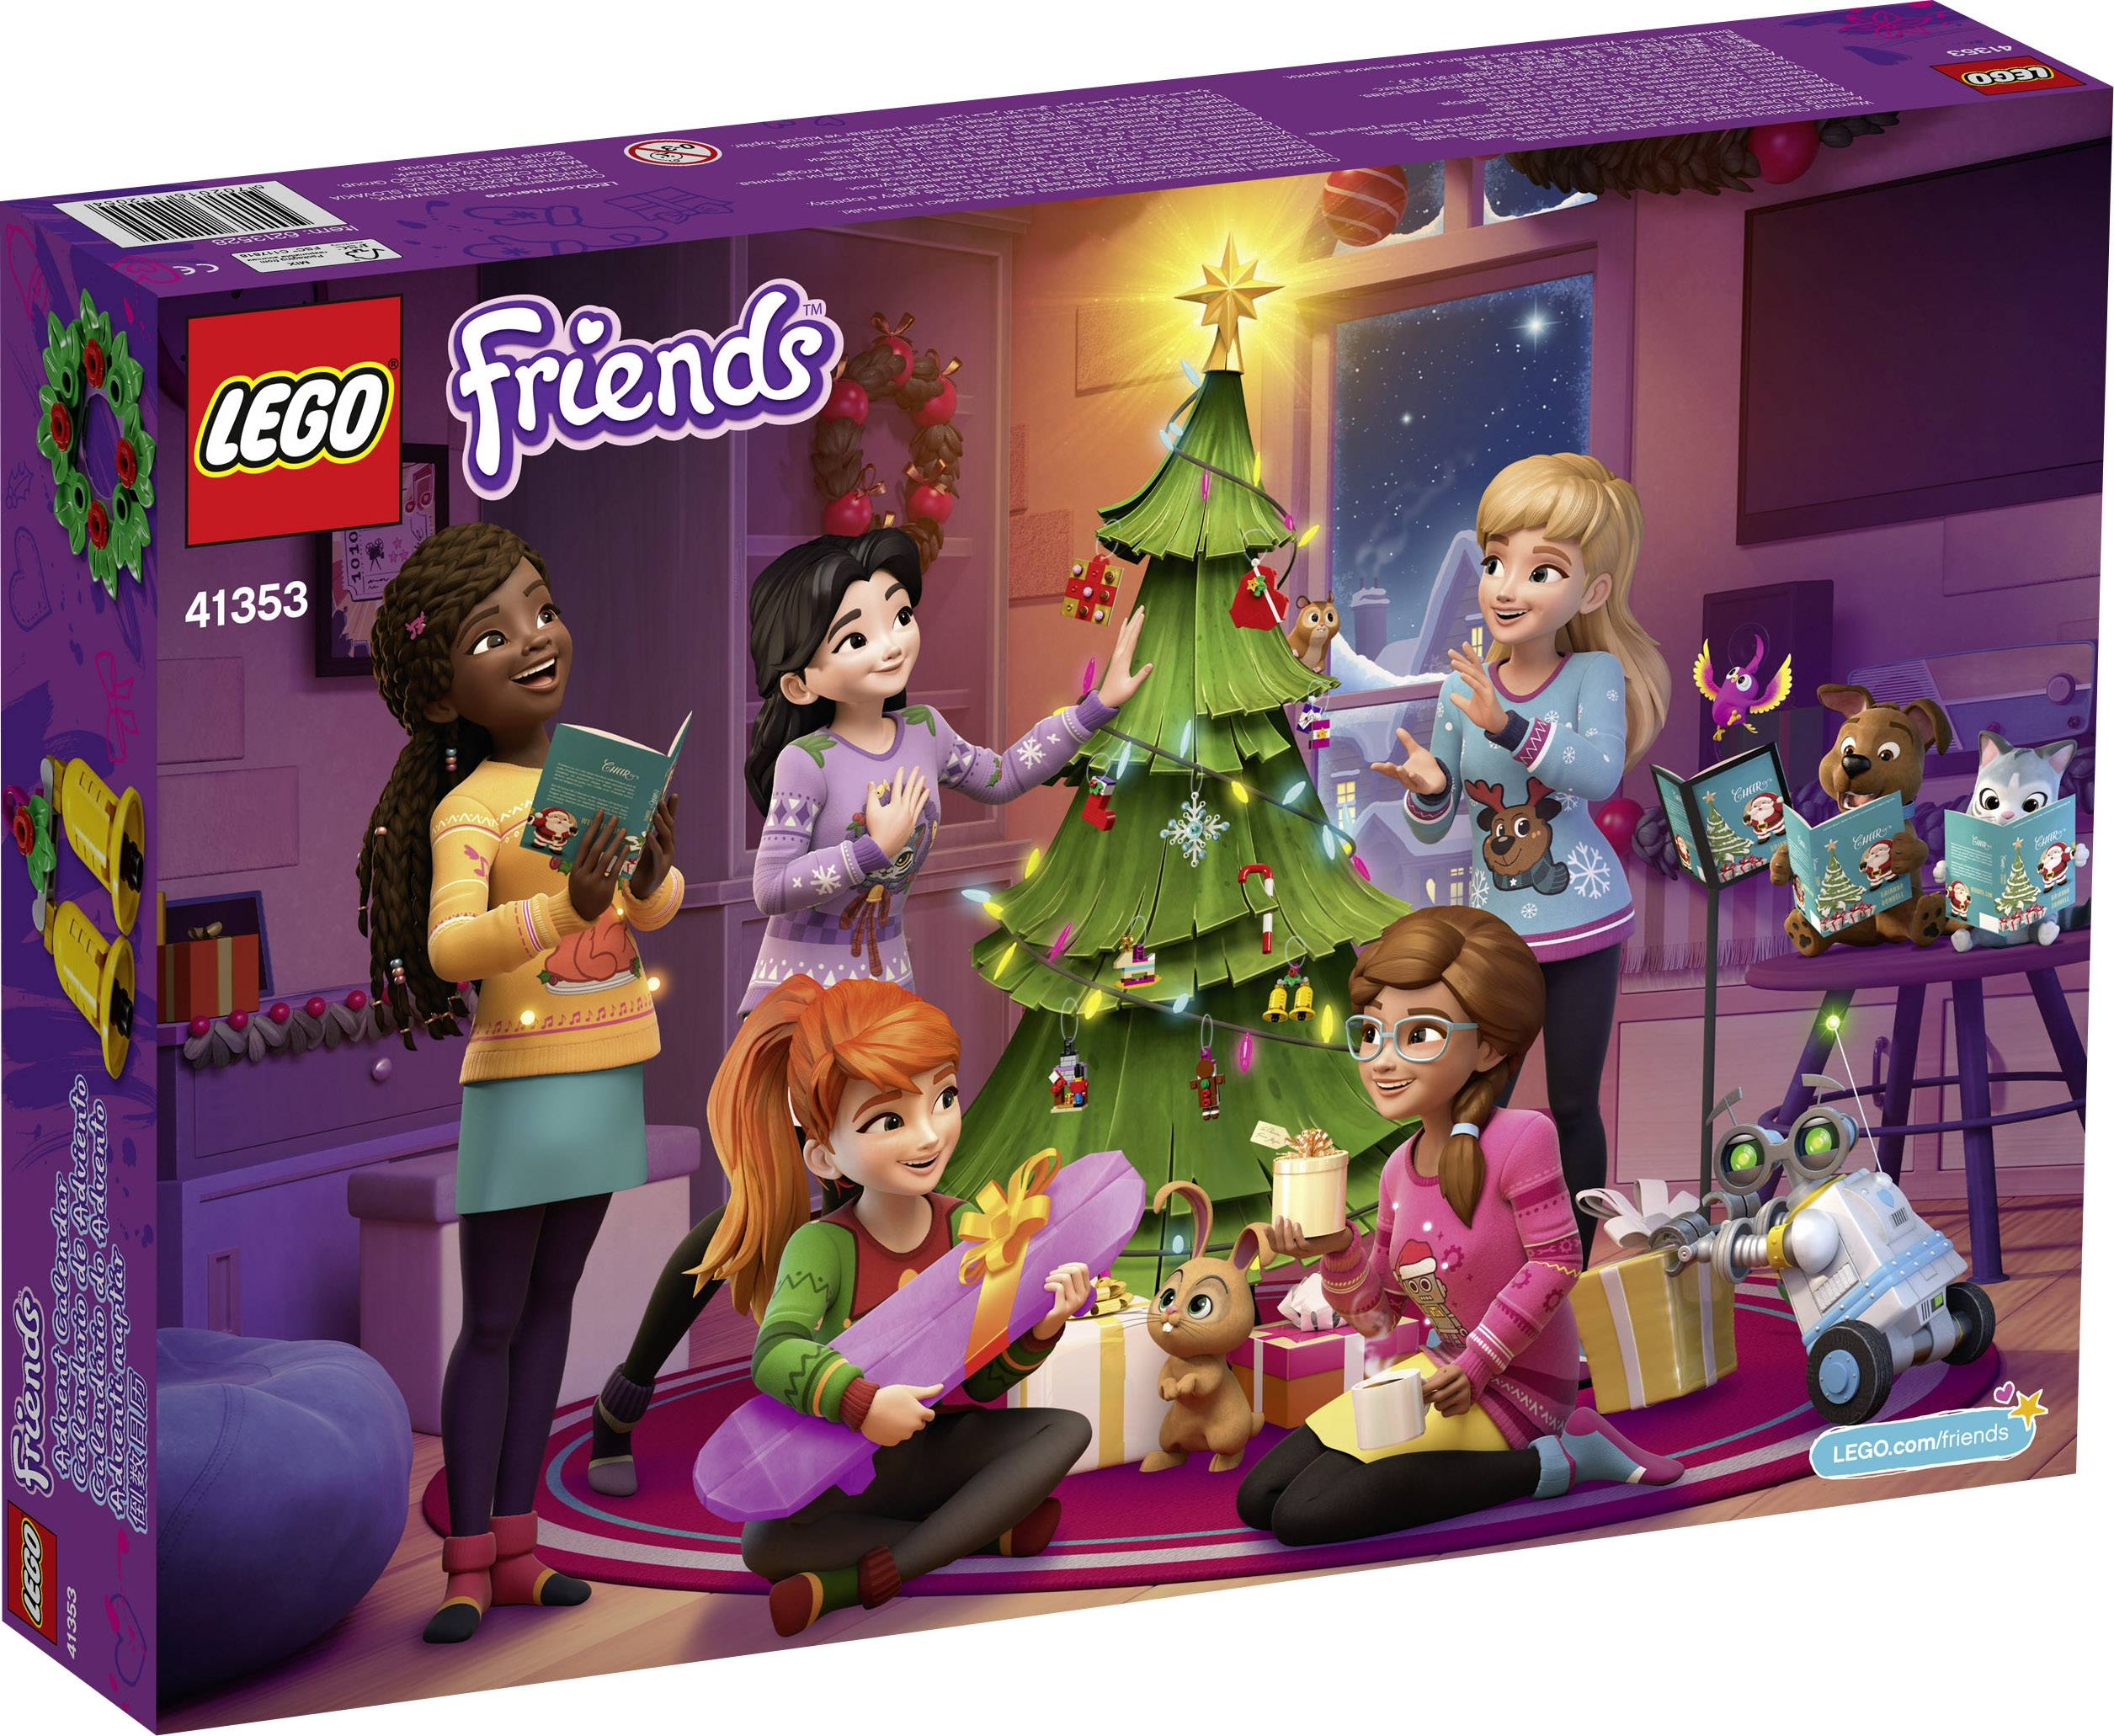 Weihnachtskalender Lego Friends.Adventskalender Lego Friends Friends 6 12 Jaar Conrad Be